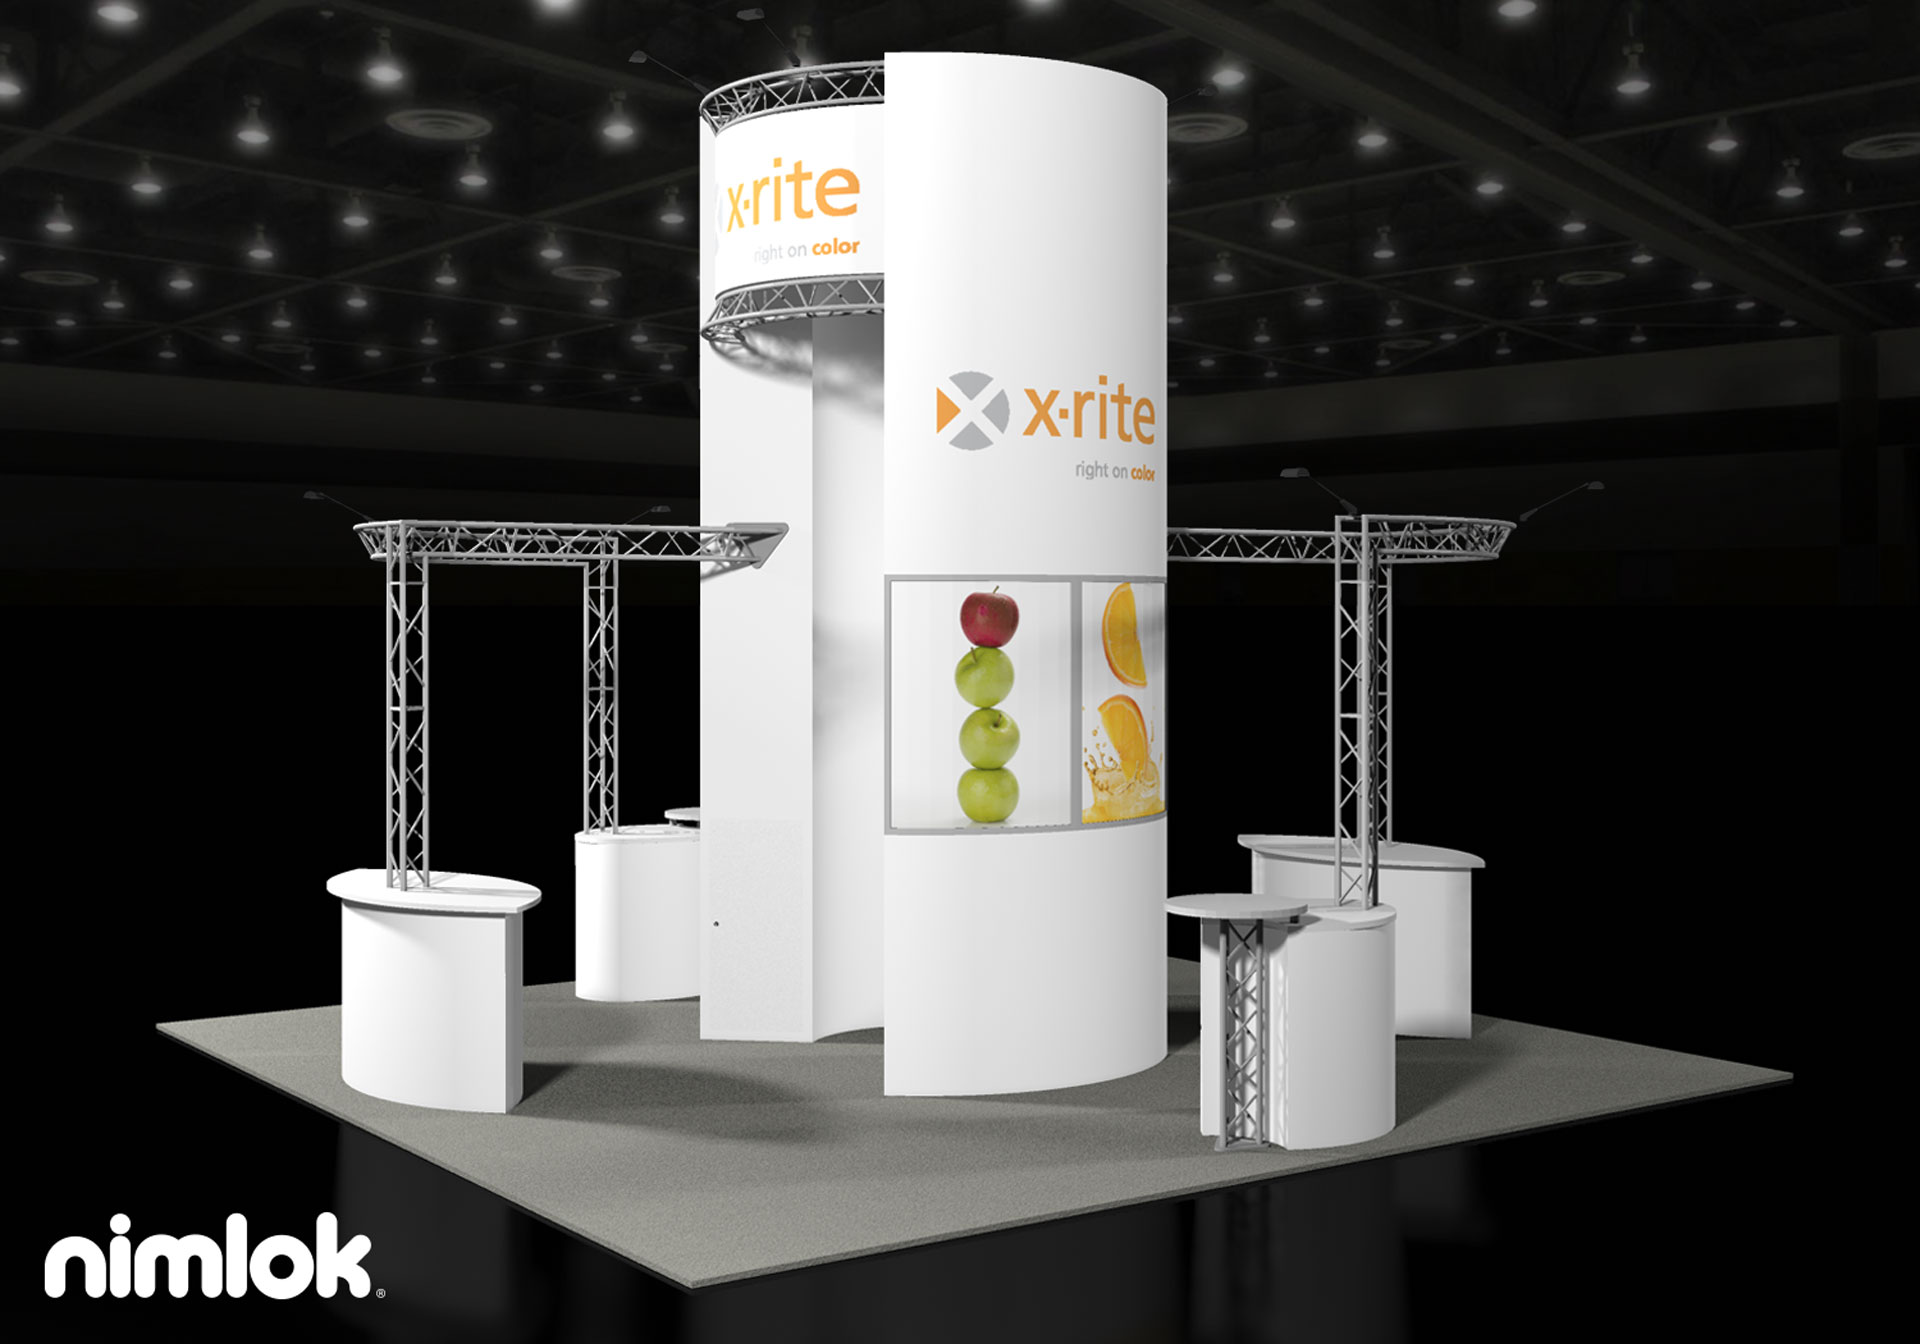 X-Rite  - 20x20 - trade show exhibit